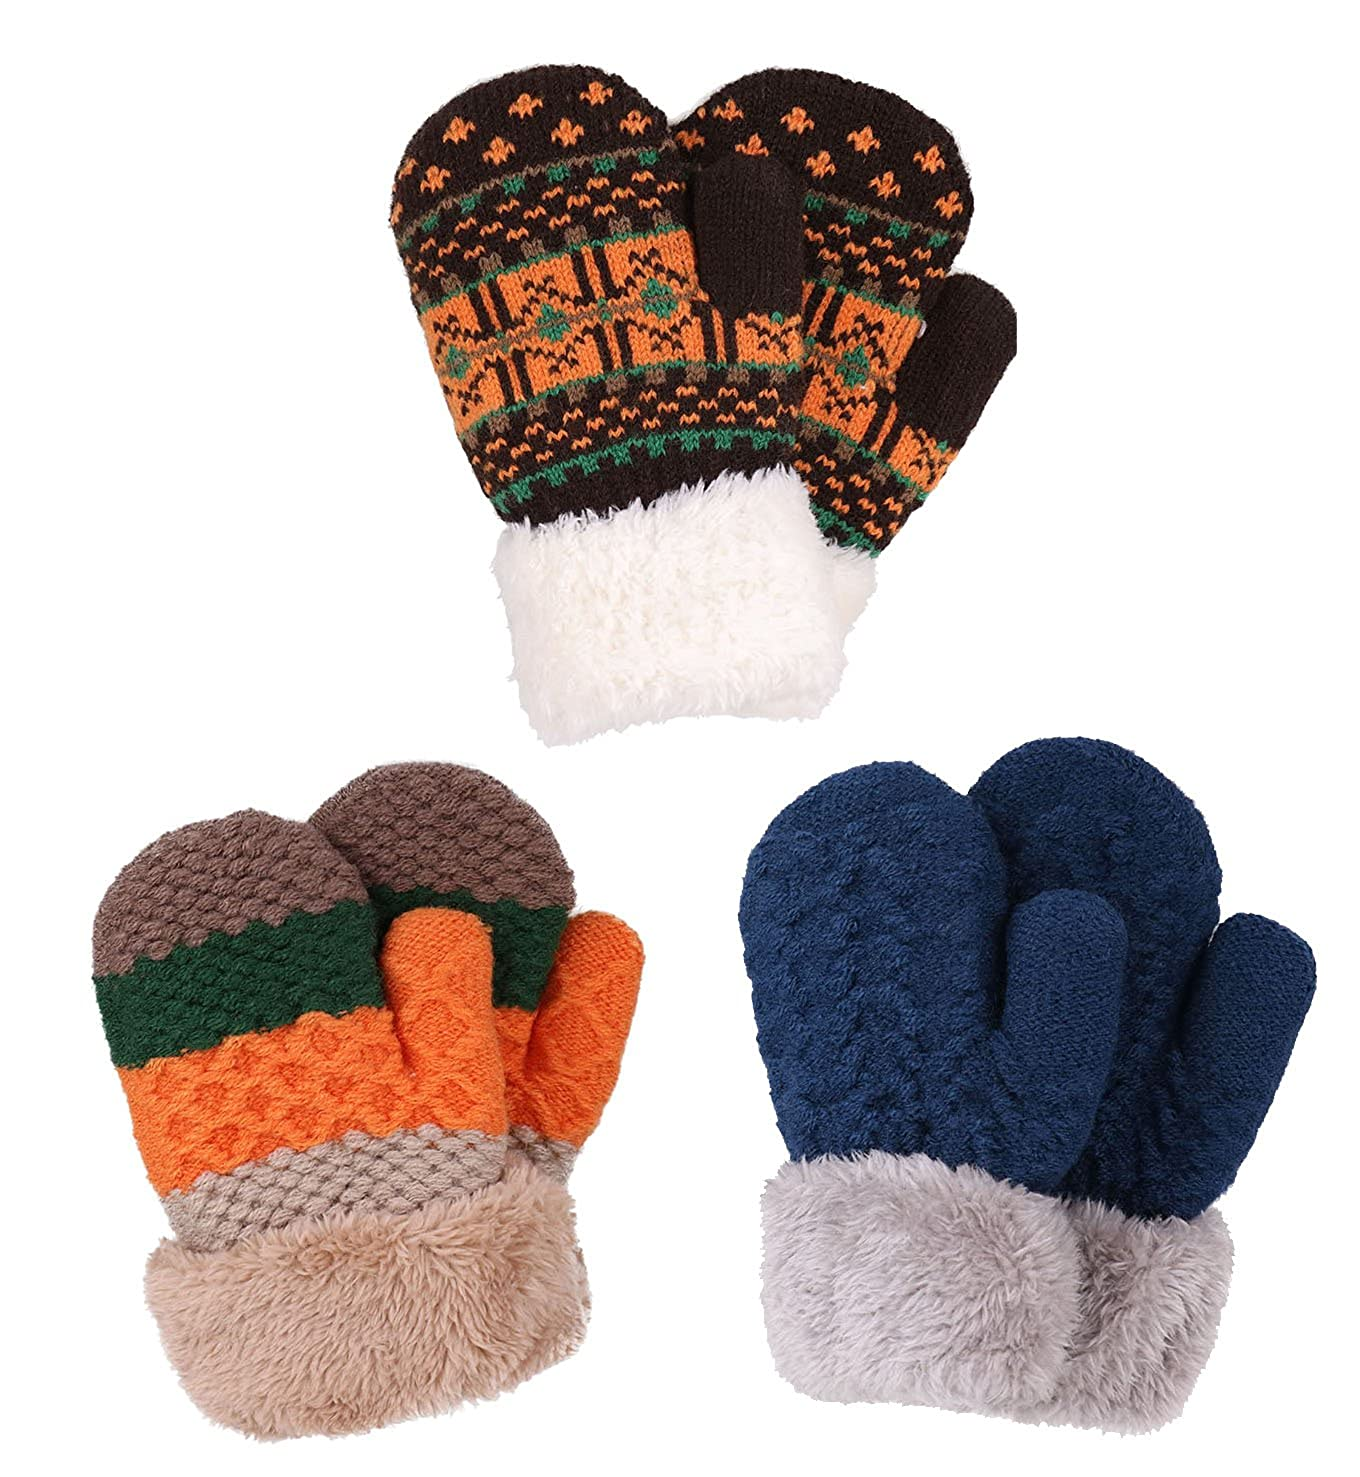 Amazon.com: 3 Pack Toddler Sherpa Lined Winter Knit Mitten Gloves ...